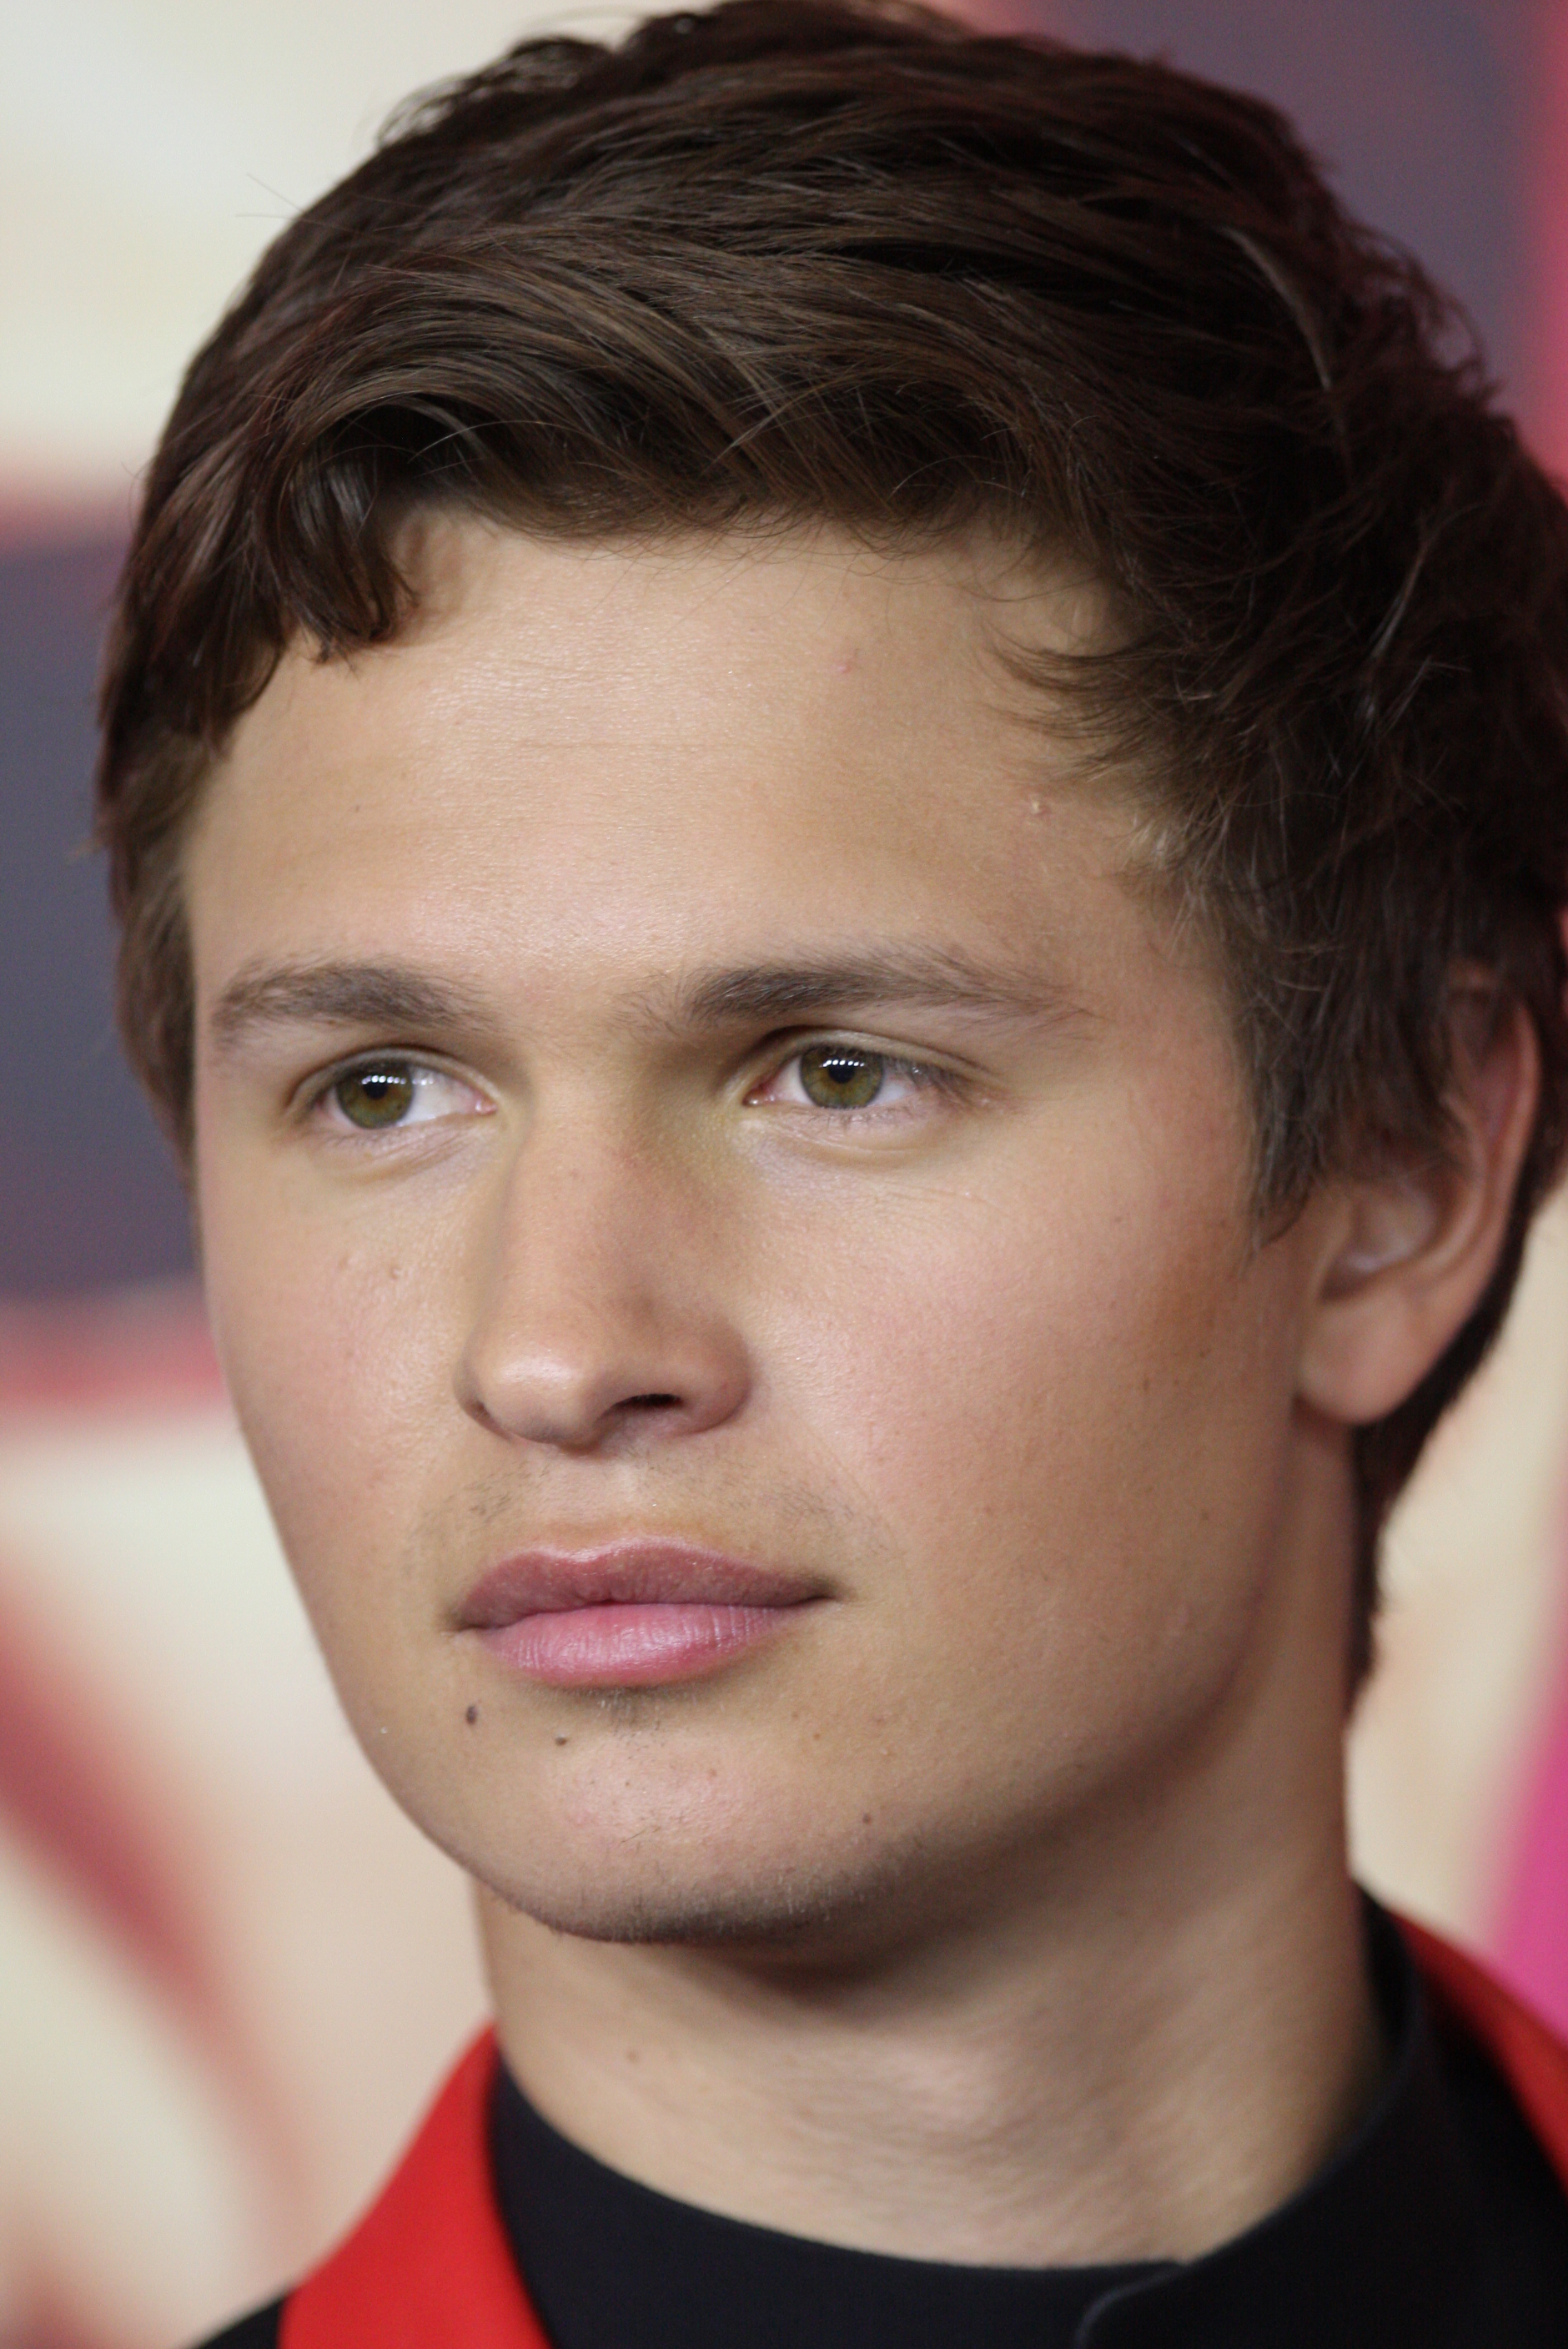 The 24-year old son of father Arhtur Elgort and mother Grethe Barrett Holby Ansel Elgort in 2018 photo. Ansel Elgort earned a 0.7 million dollar salary - leaving the net worth at 5 million in 2018